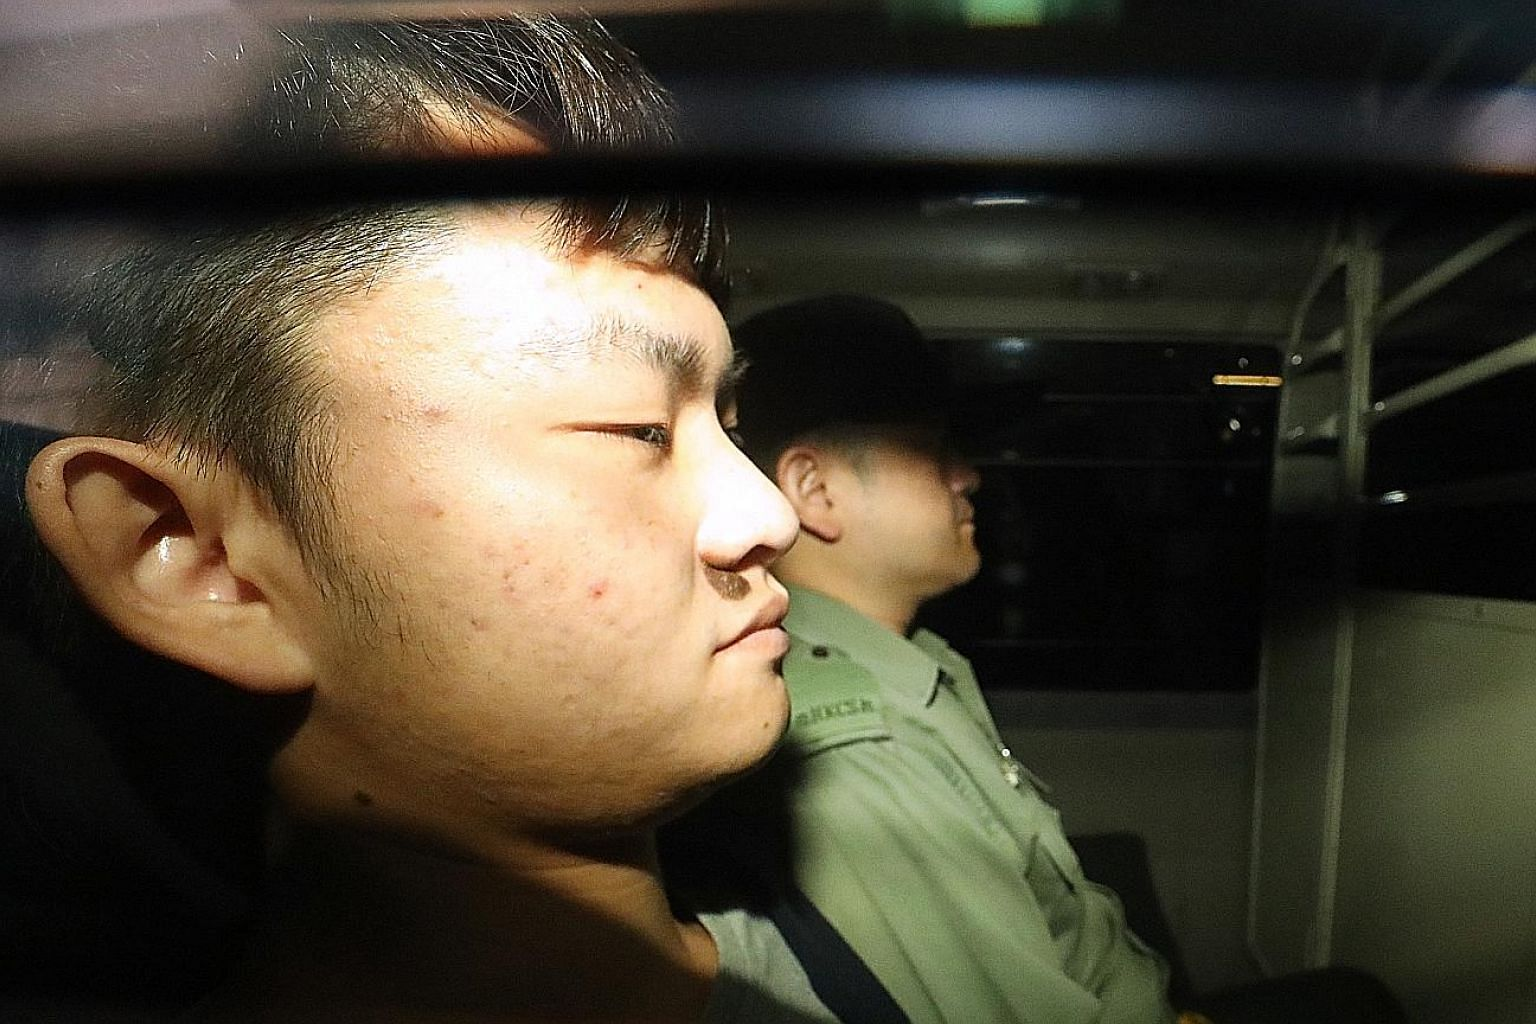 Chan Tong Kai, who has been accused of killing his pregnant girlfriend, reportedly made the decision to turn himself in to the Taiwanese authorities after consulting with a pastor. He was jailed in Hong Kong on a lesser charge of money laundering.